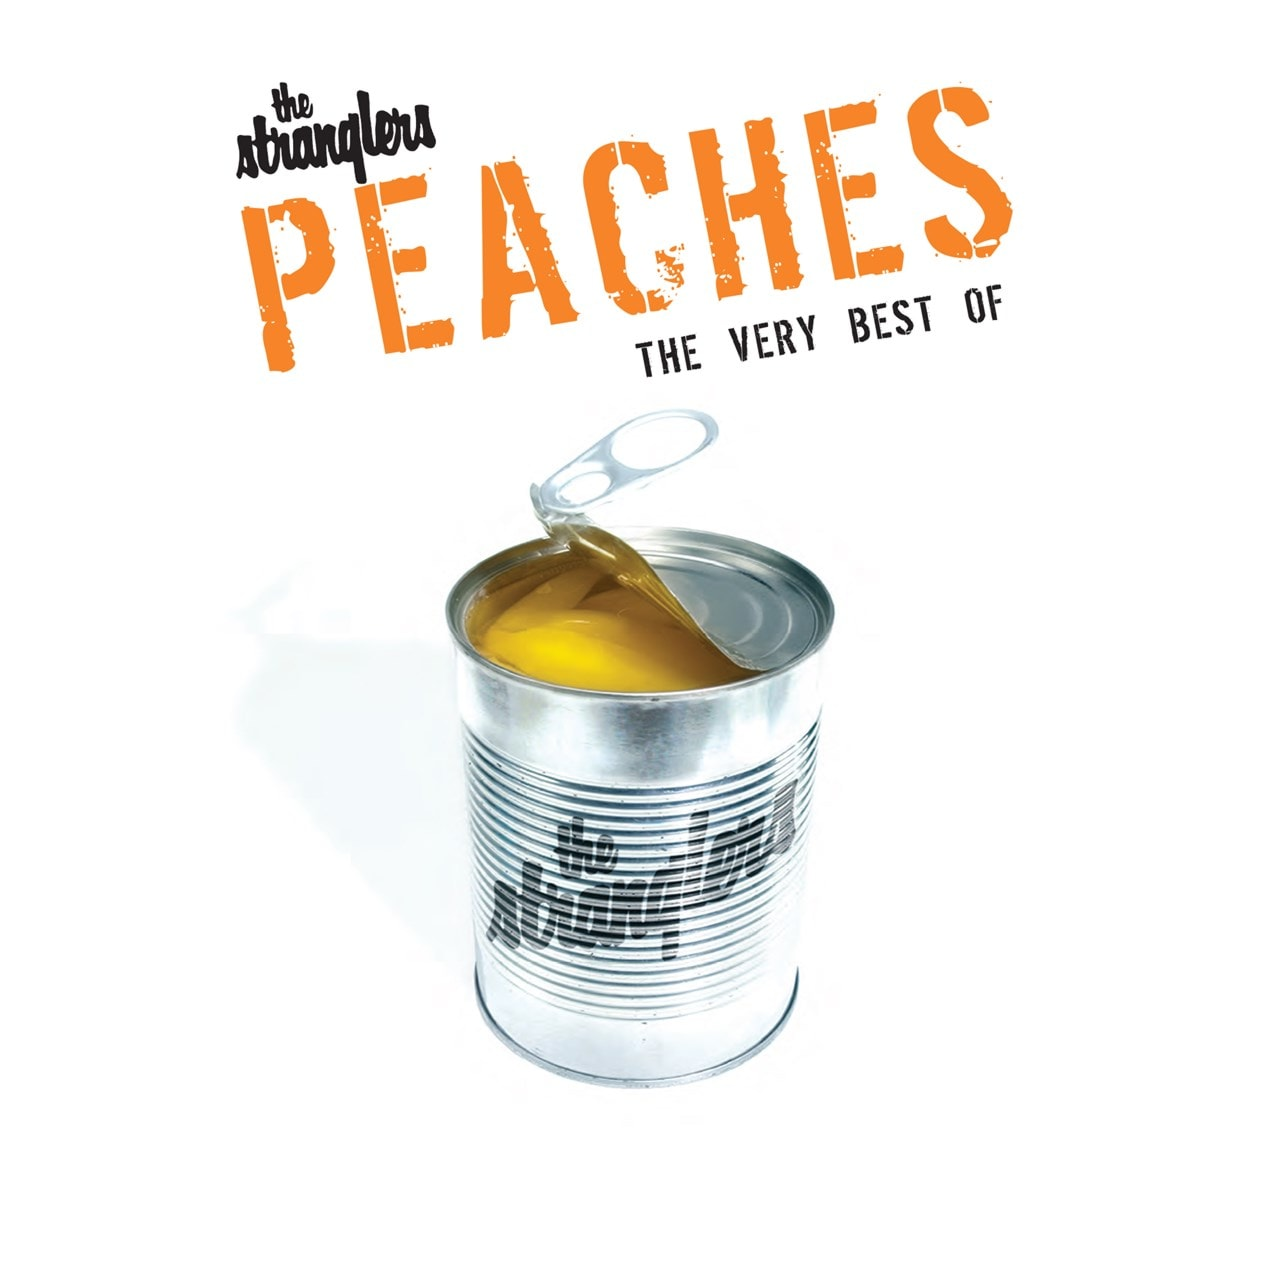 Peaches: The Very Best of the Stranglers - 1